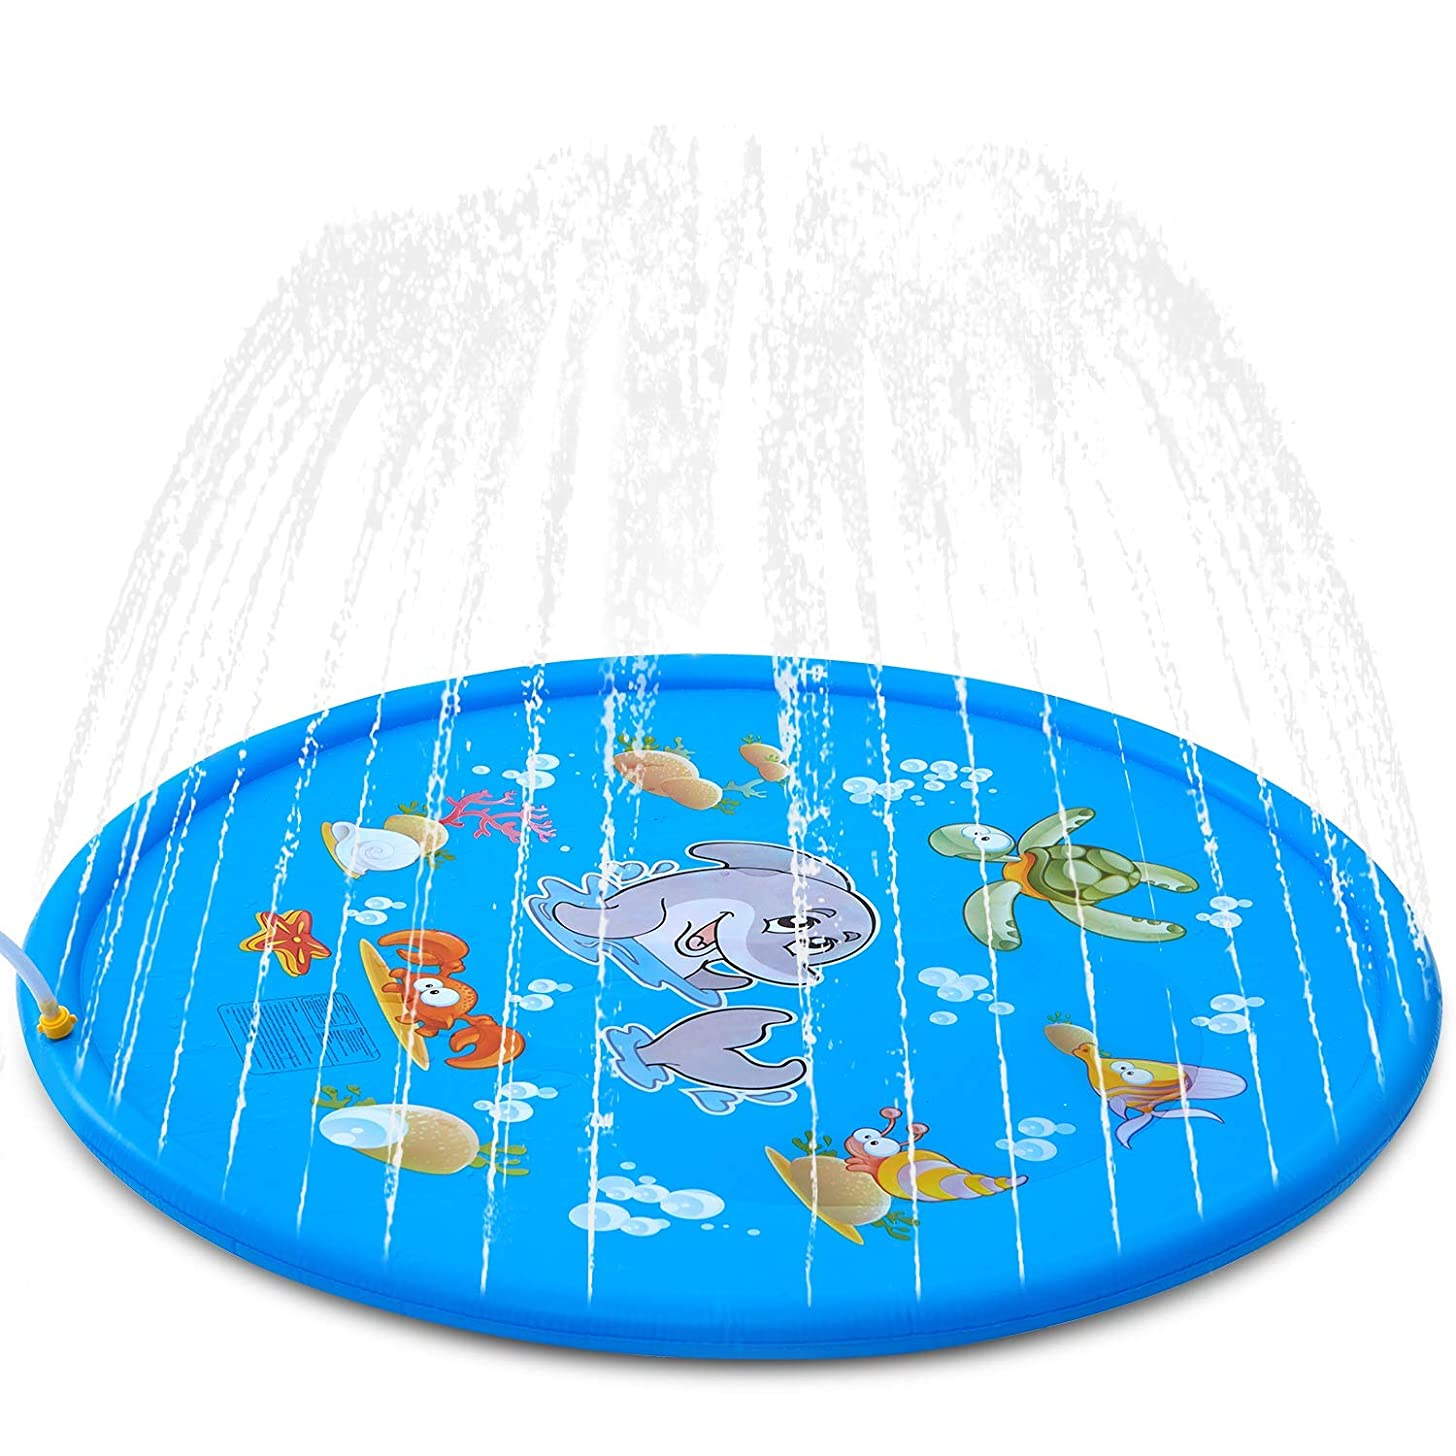 """Splash Pad, ALWOA 68""""Kids Sprinkler Pad for 1 2 3 4 5 Year Old Toodler Children Boys Girls, Inflatable Shark Water Toys Fun for Outdoor, Upgraded Sprinkle and Splash Play Mat with Wading Pool"""